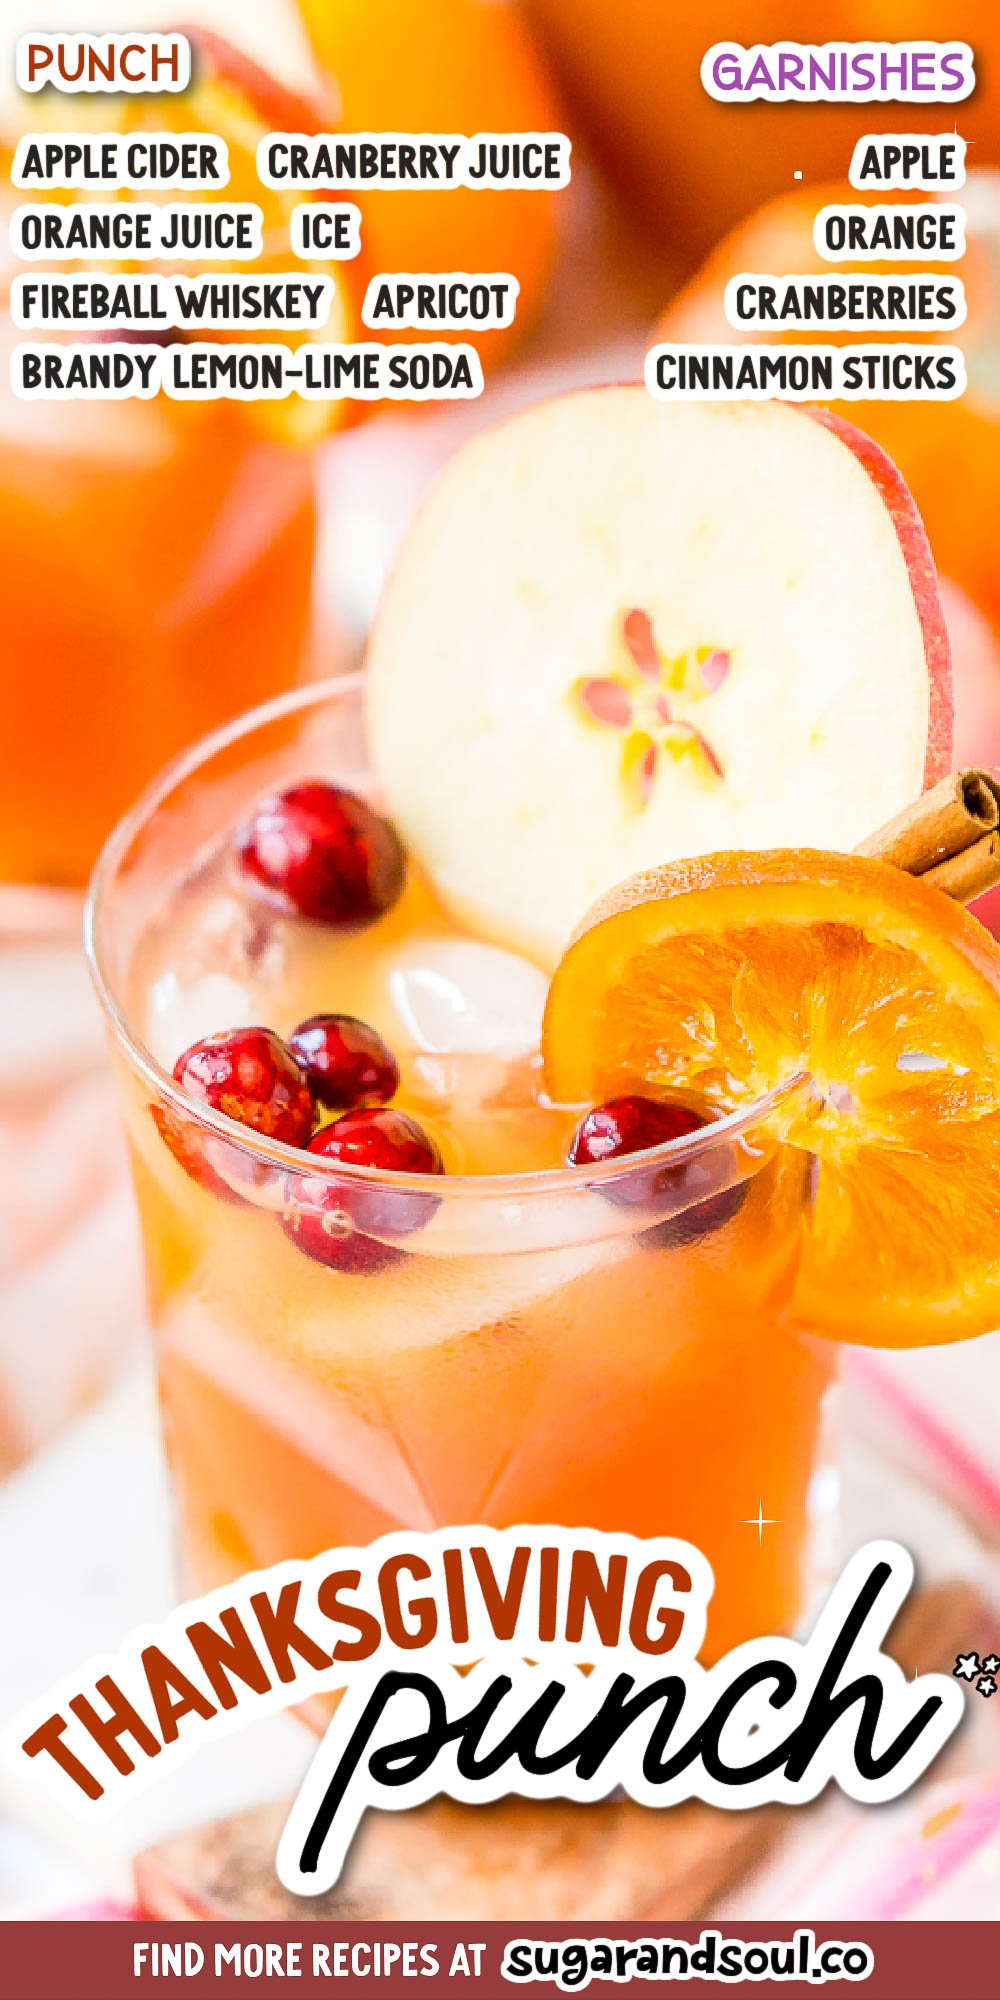 This Thanksgiving Punch made with apple cider, whiskey, fruit juice, brandy, and soda packs the delicious flavors of fall and winter in one delicious holiday drink recipe! via @sugarandsoulco